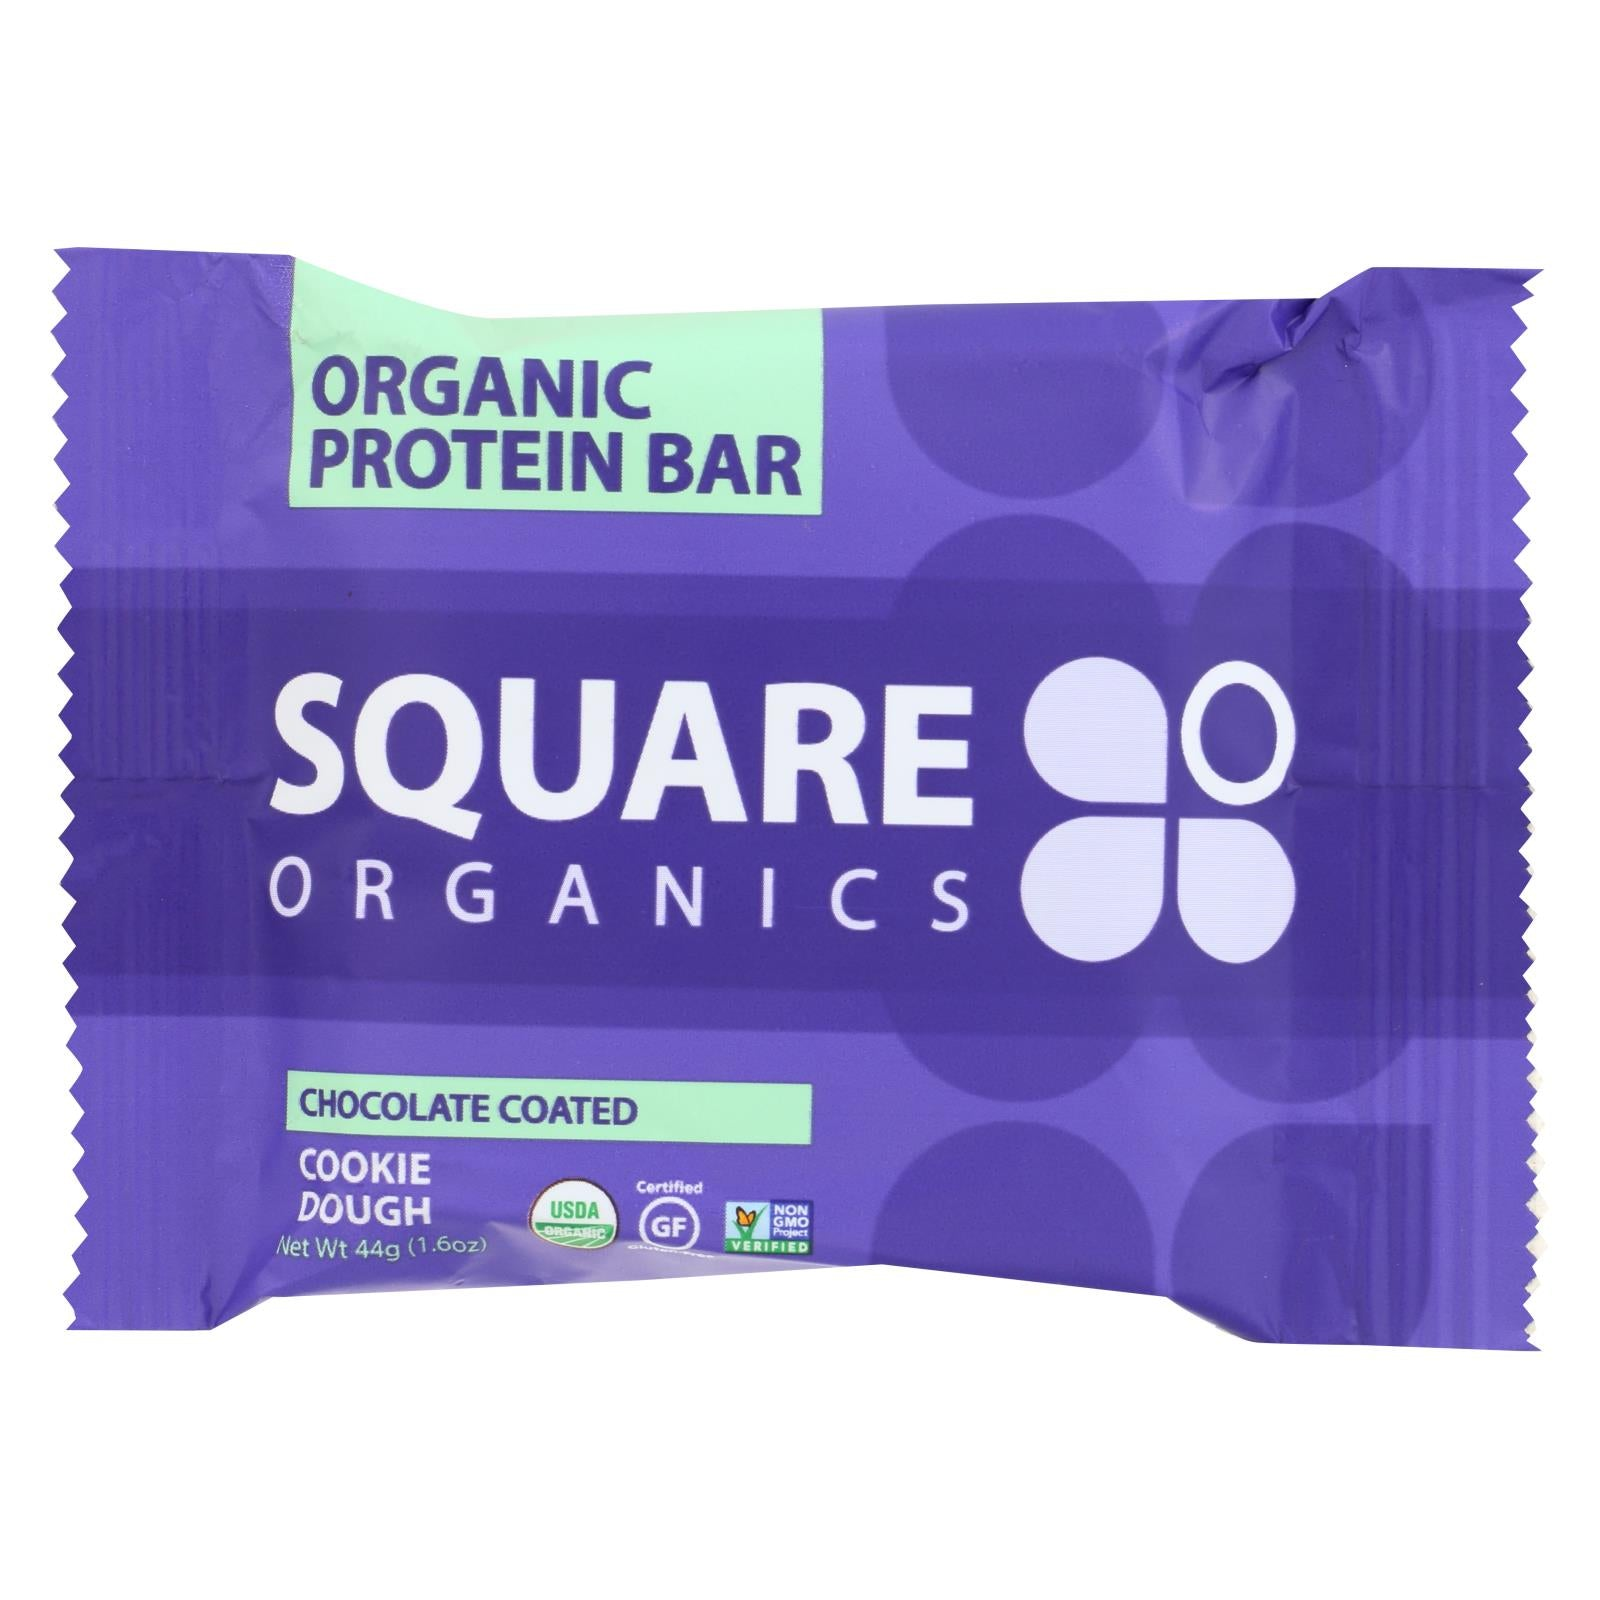 Square Organics Chocolate Coated Cookie Dough